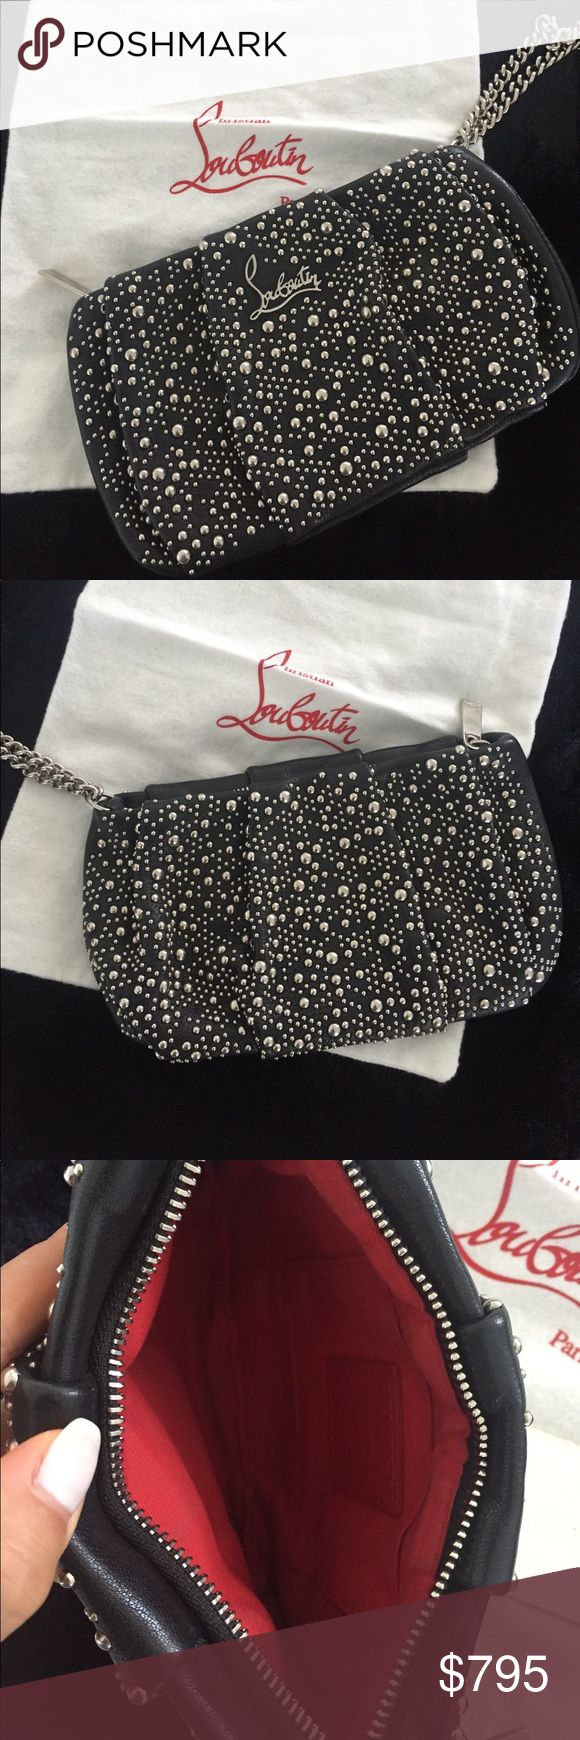 Christian Louboutin Clutch Christian Louboutin Studded Clutch and wristlet. Beautiful little handbag. 100% authentic. Will come in Original Louboutin Dustbag and has tag (unattached). Used less than a handful of times. Like new. Signature Red Louboutin Interior. Christian Louboutin Bags Clutches & Wristlets